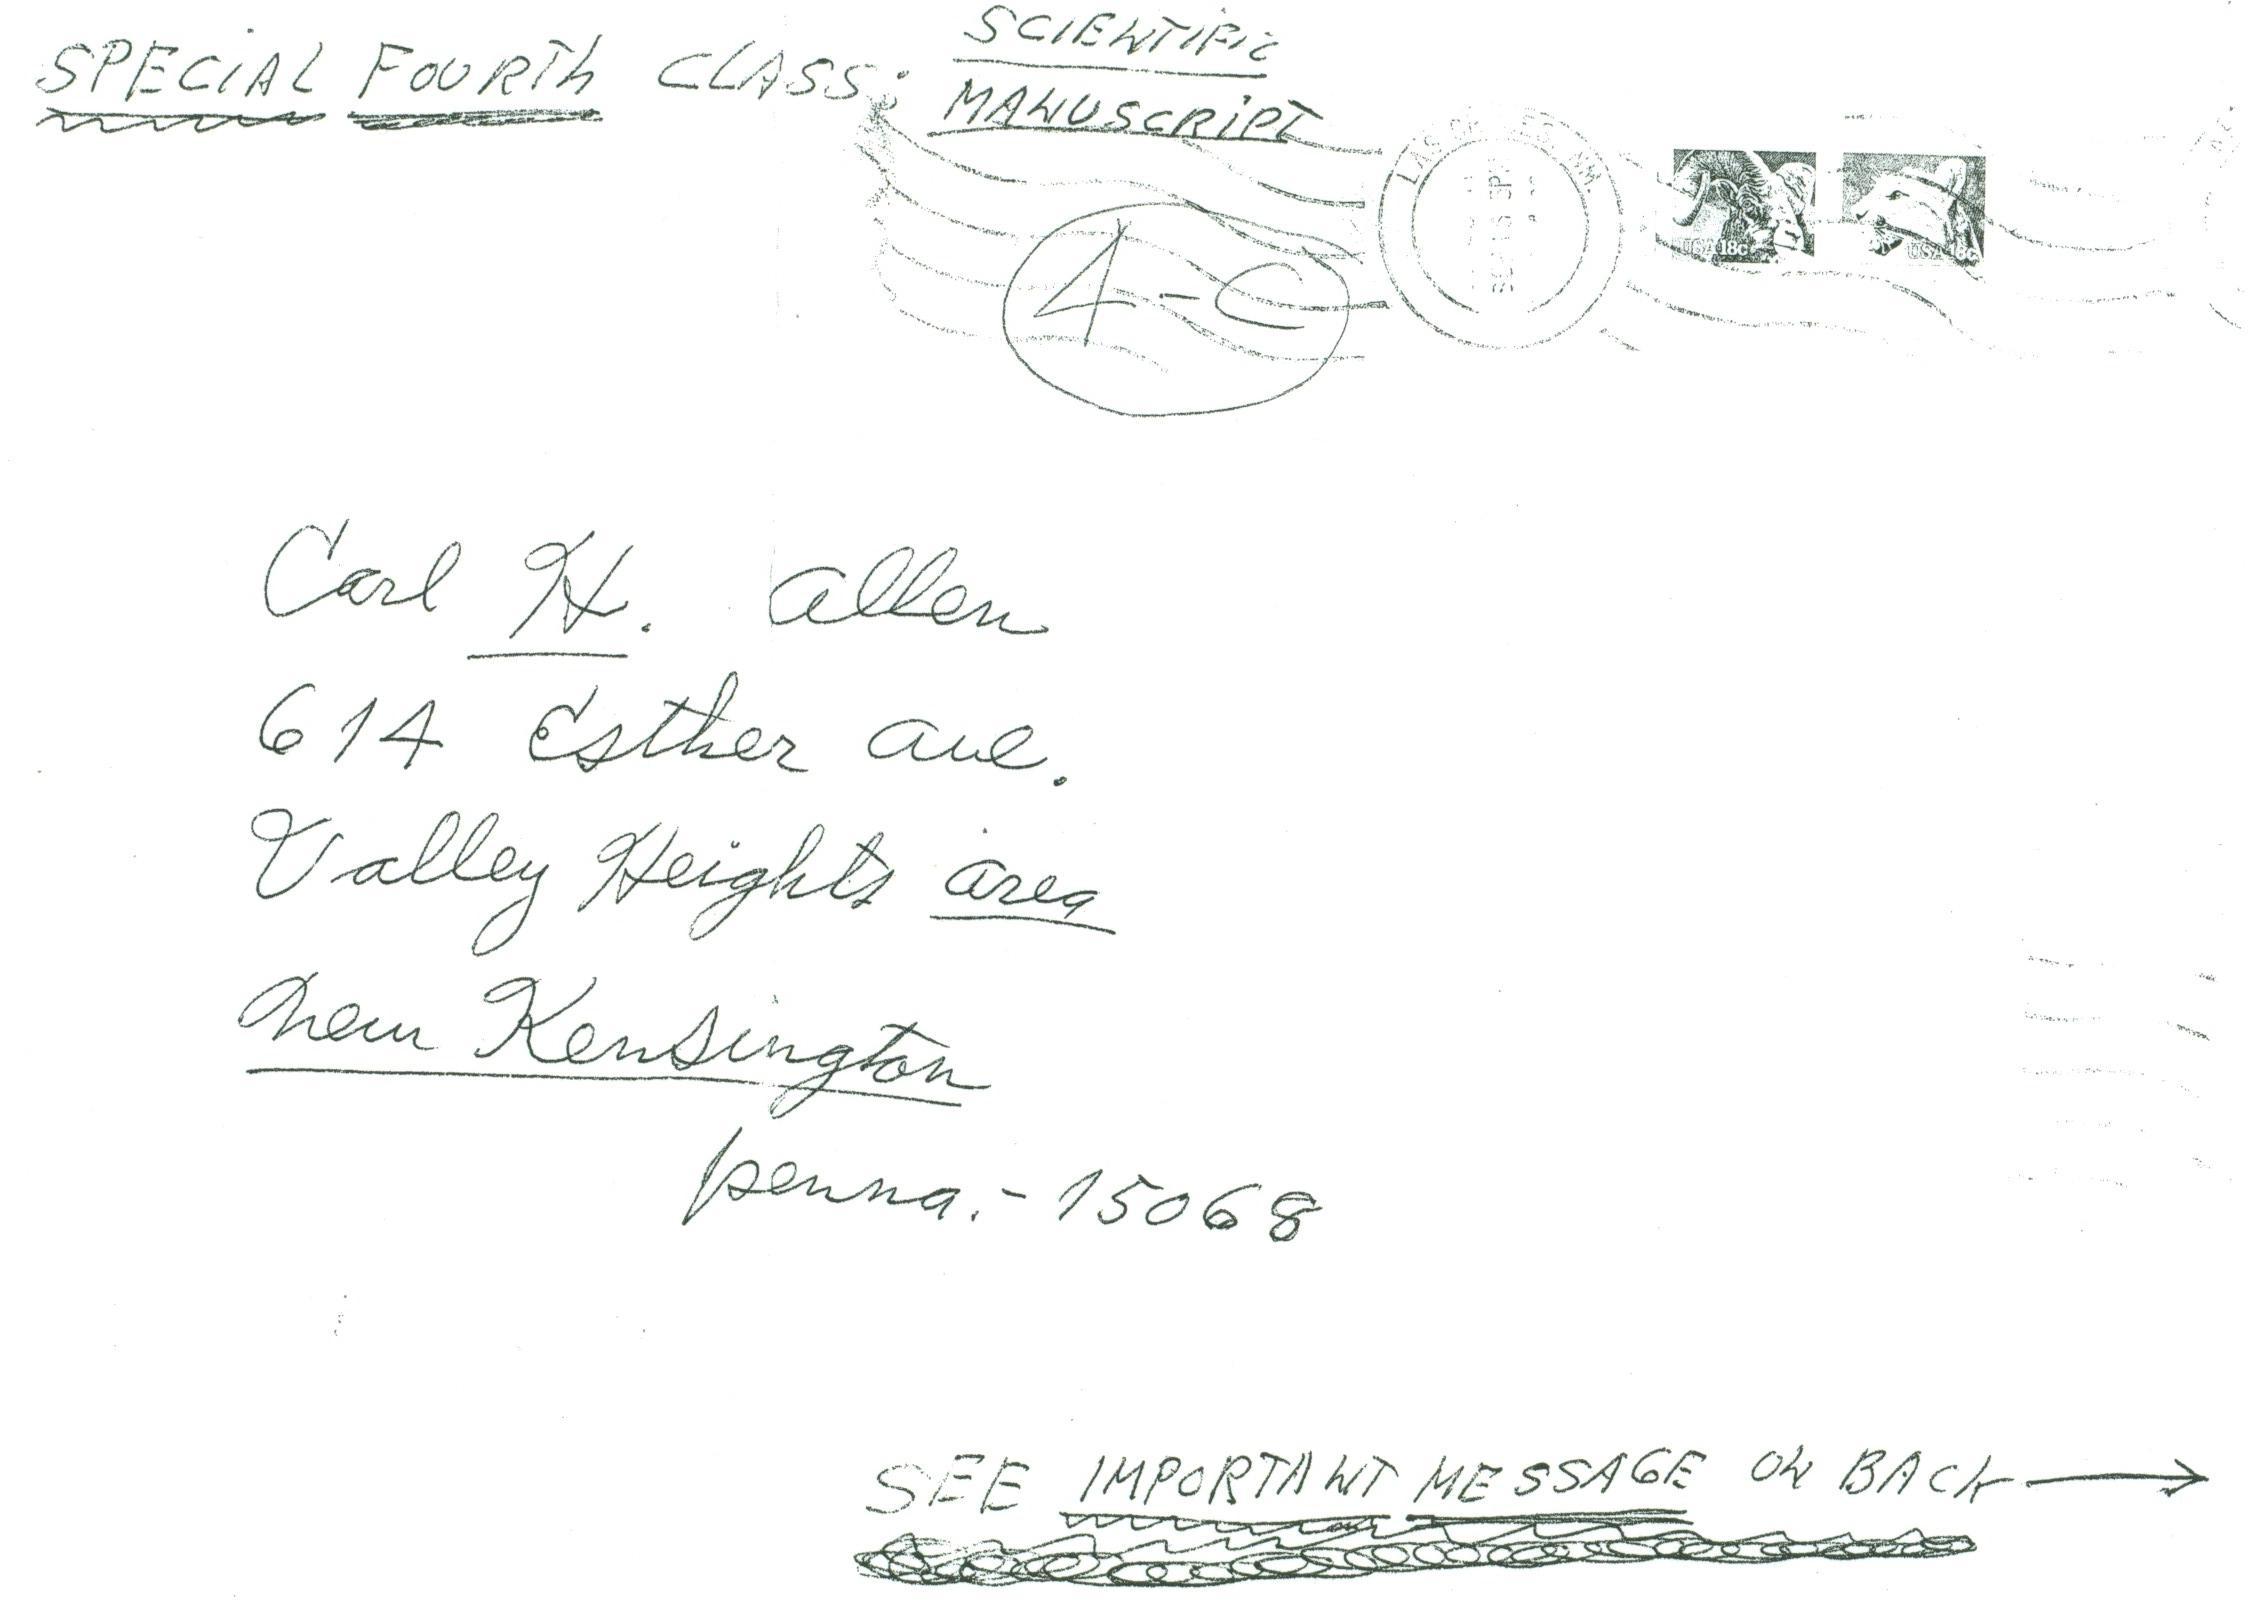 (RG) September-1981, Scientific Manuscript Envelope from Carl Allen to his father